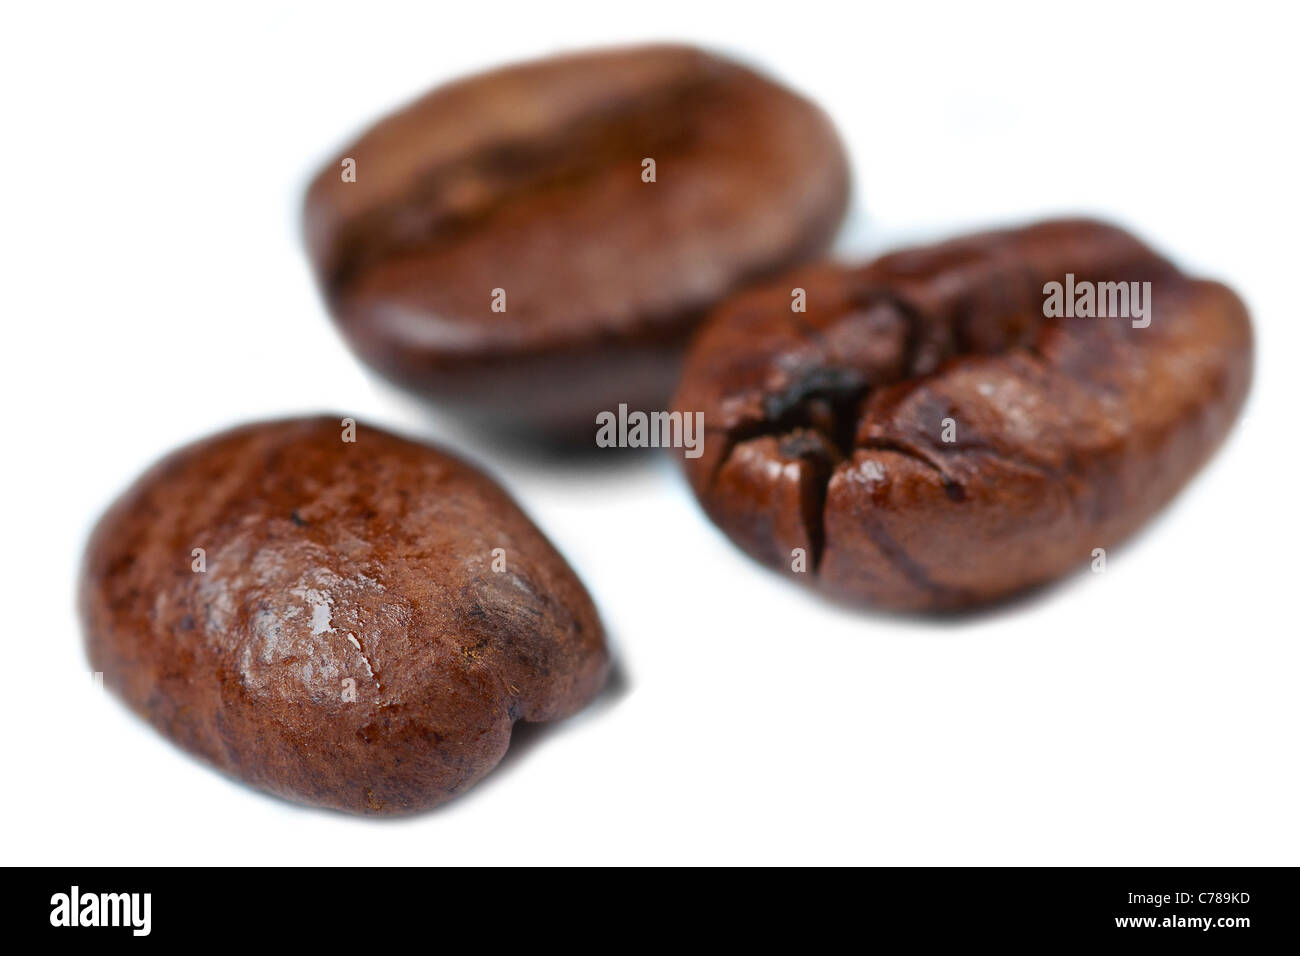 Three coffee beans on a white background with low depth of field. - Stock Image